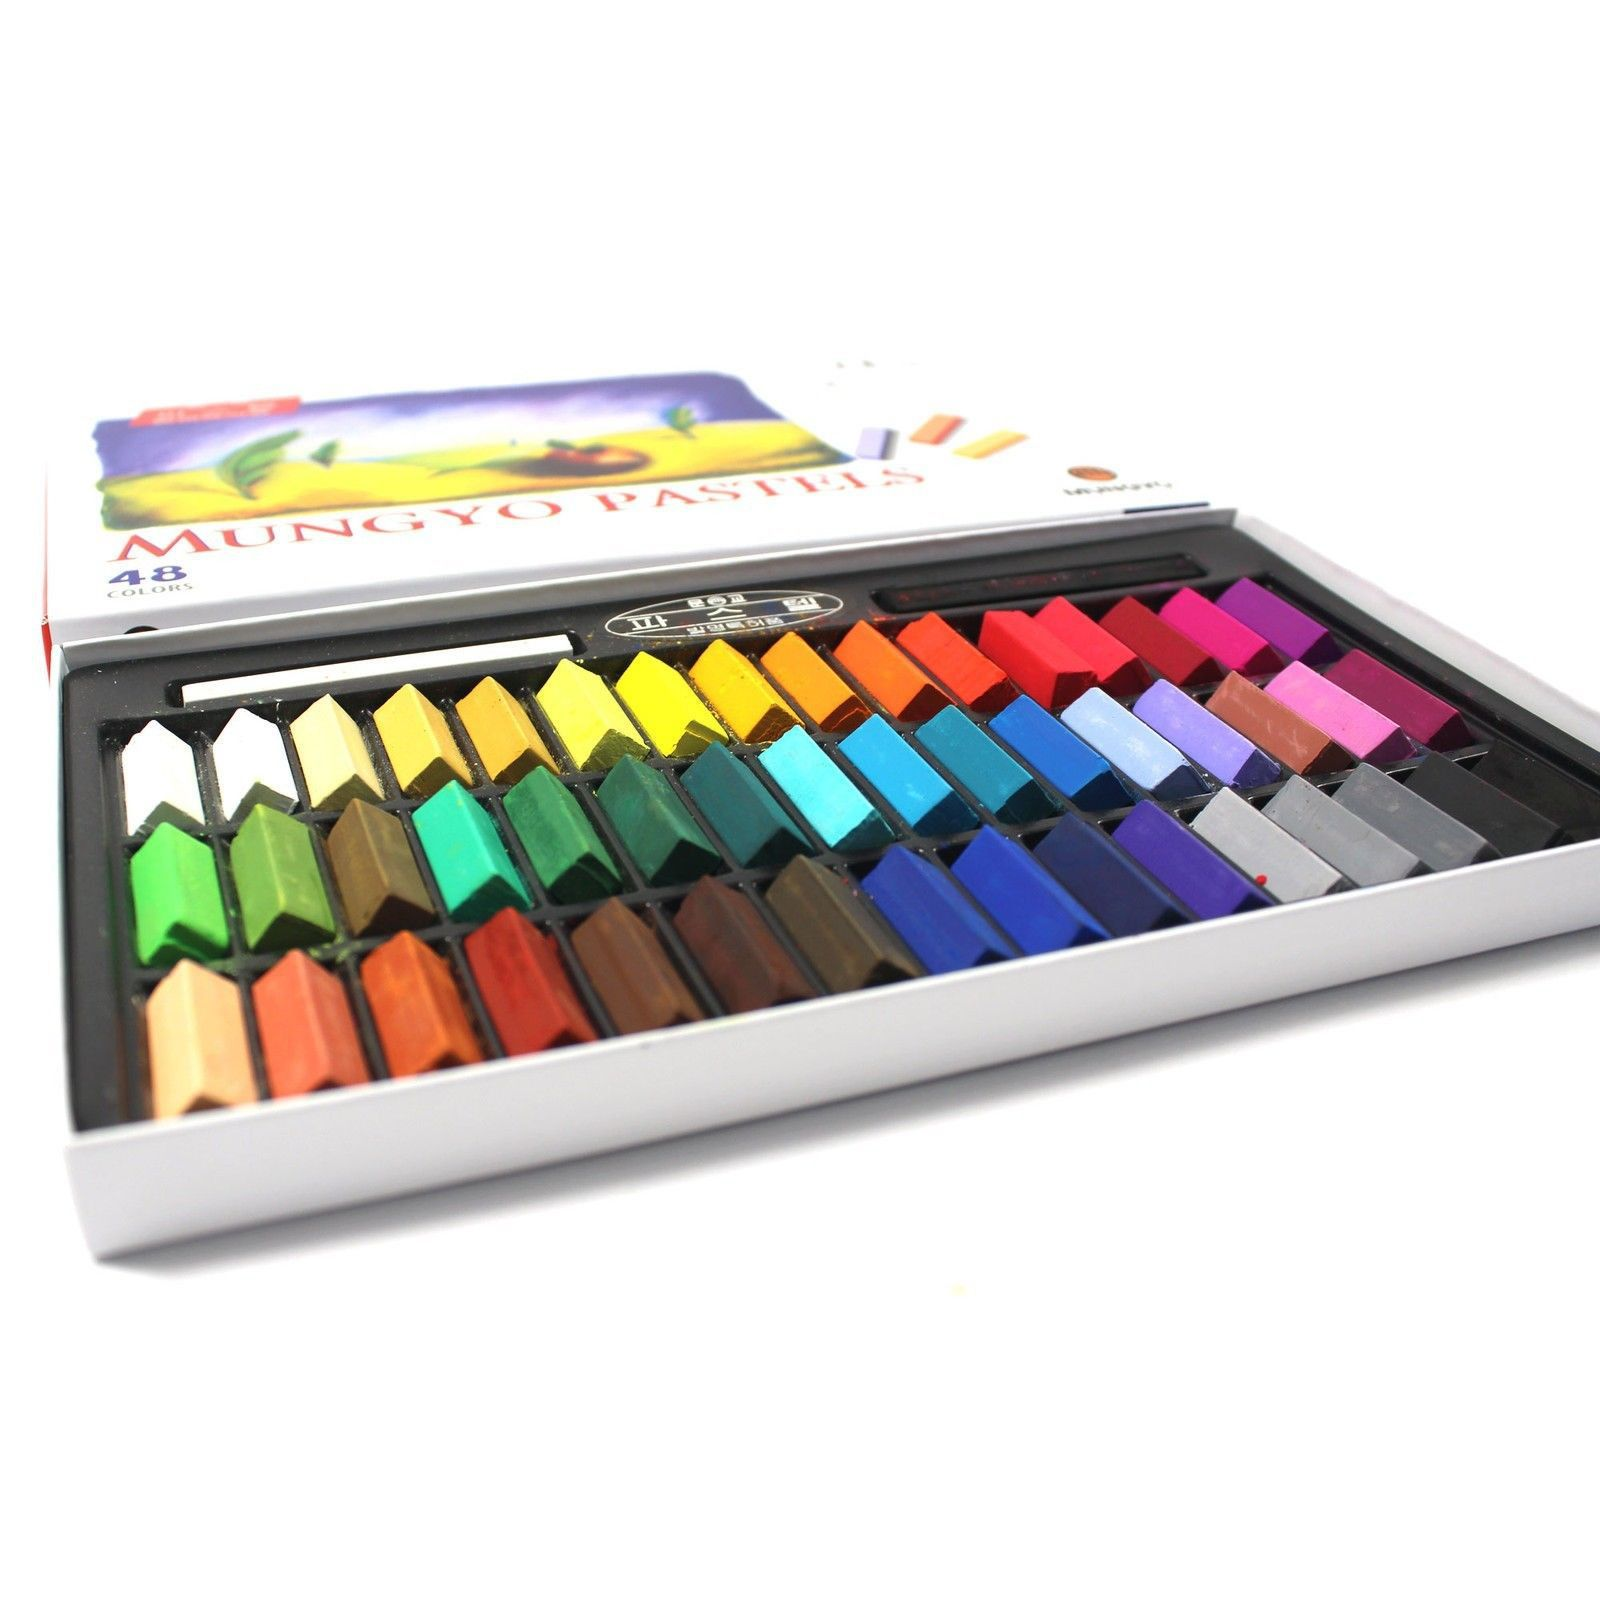 11 Pastel Paint Colors: Art Mungyo Soft Square Chalk Drawing Set Colors Pastels Color 48 Pastel Painting